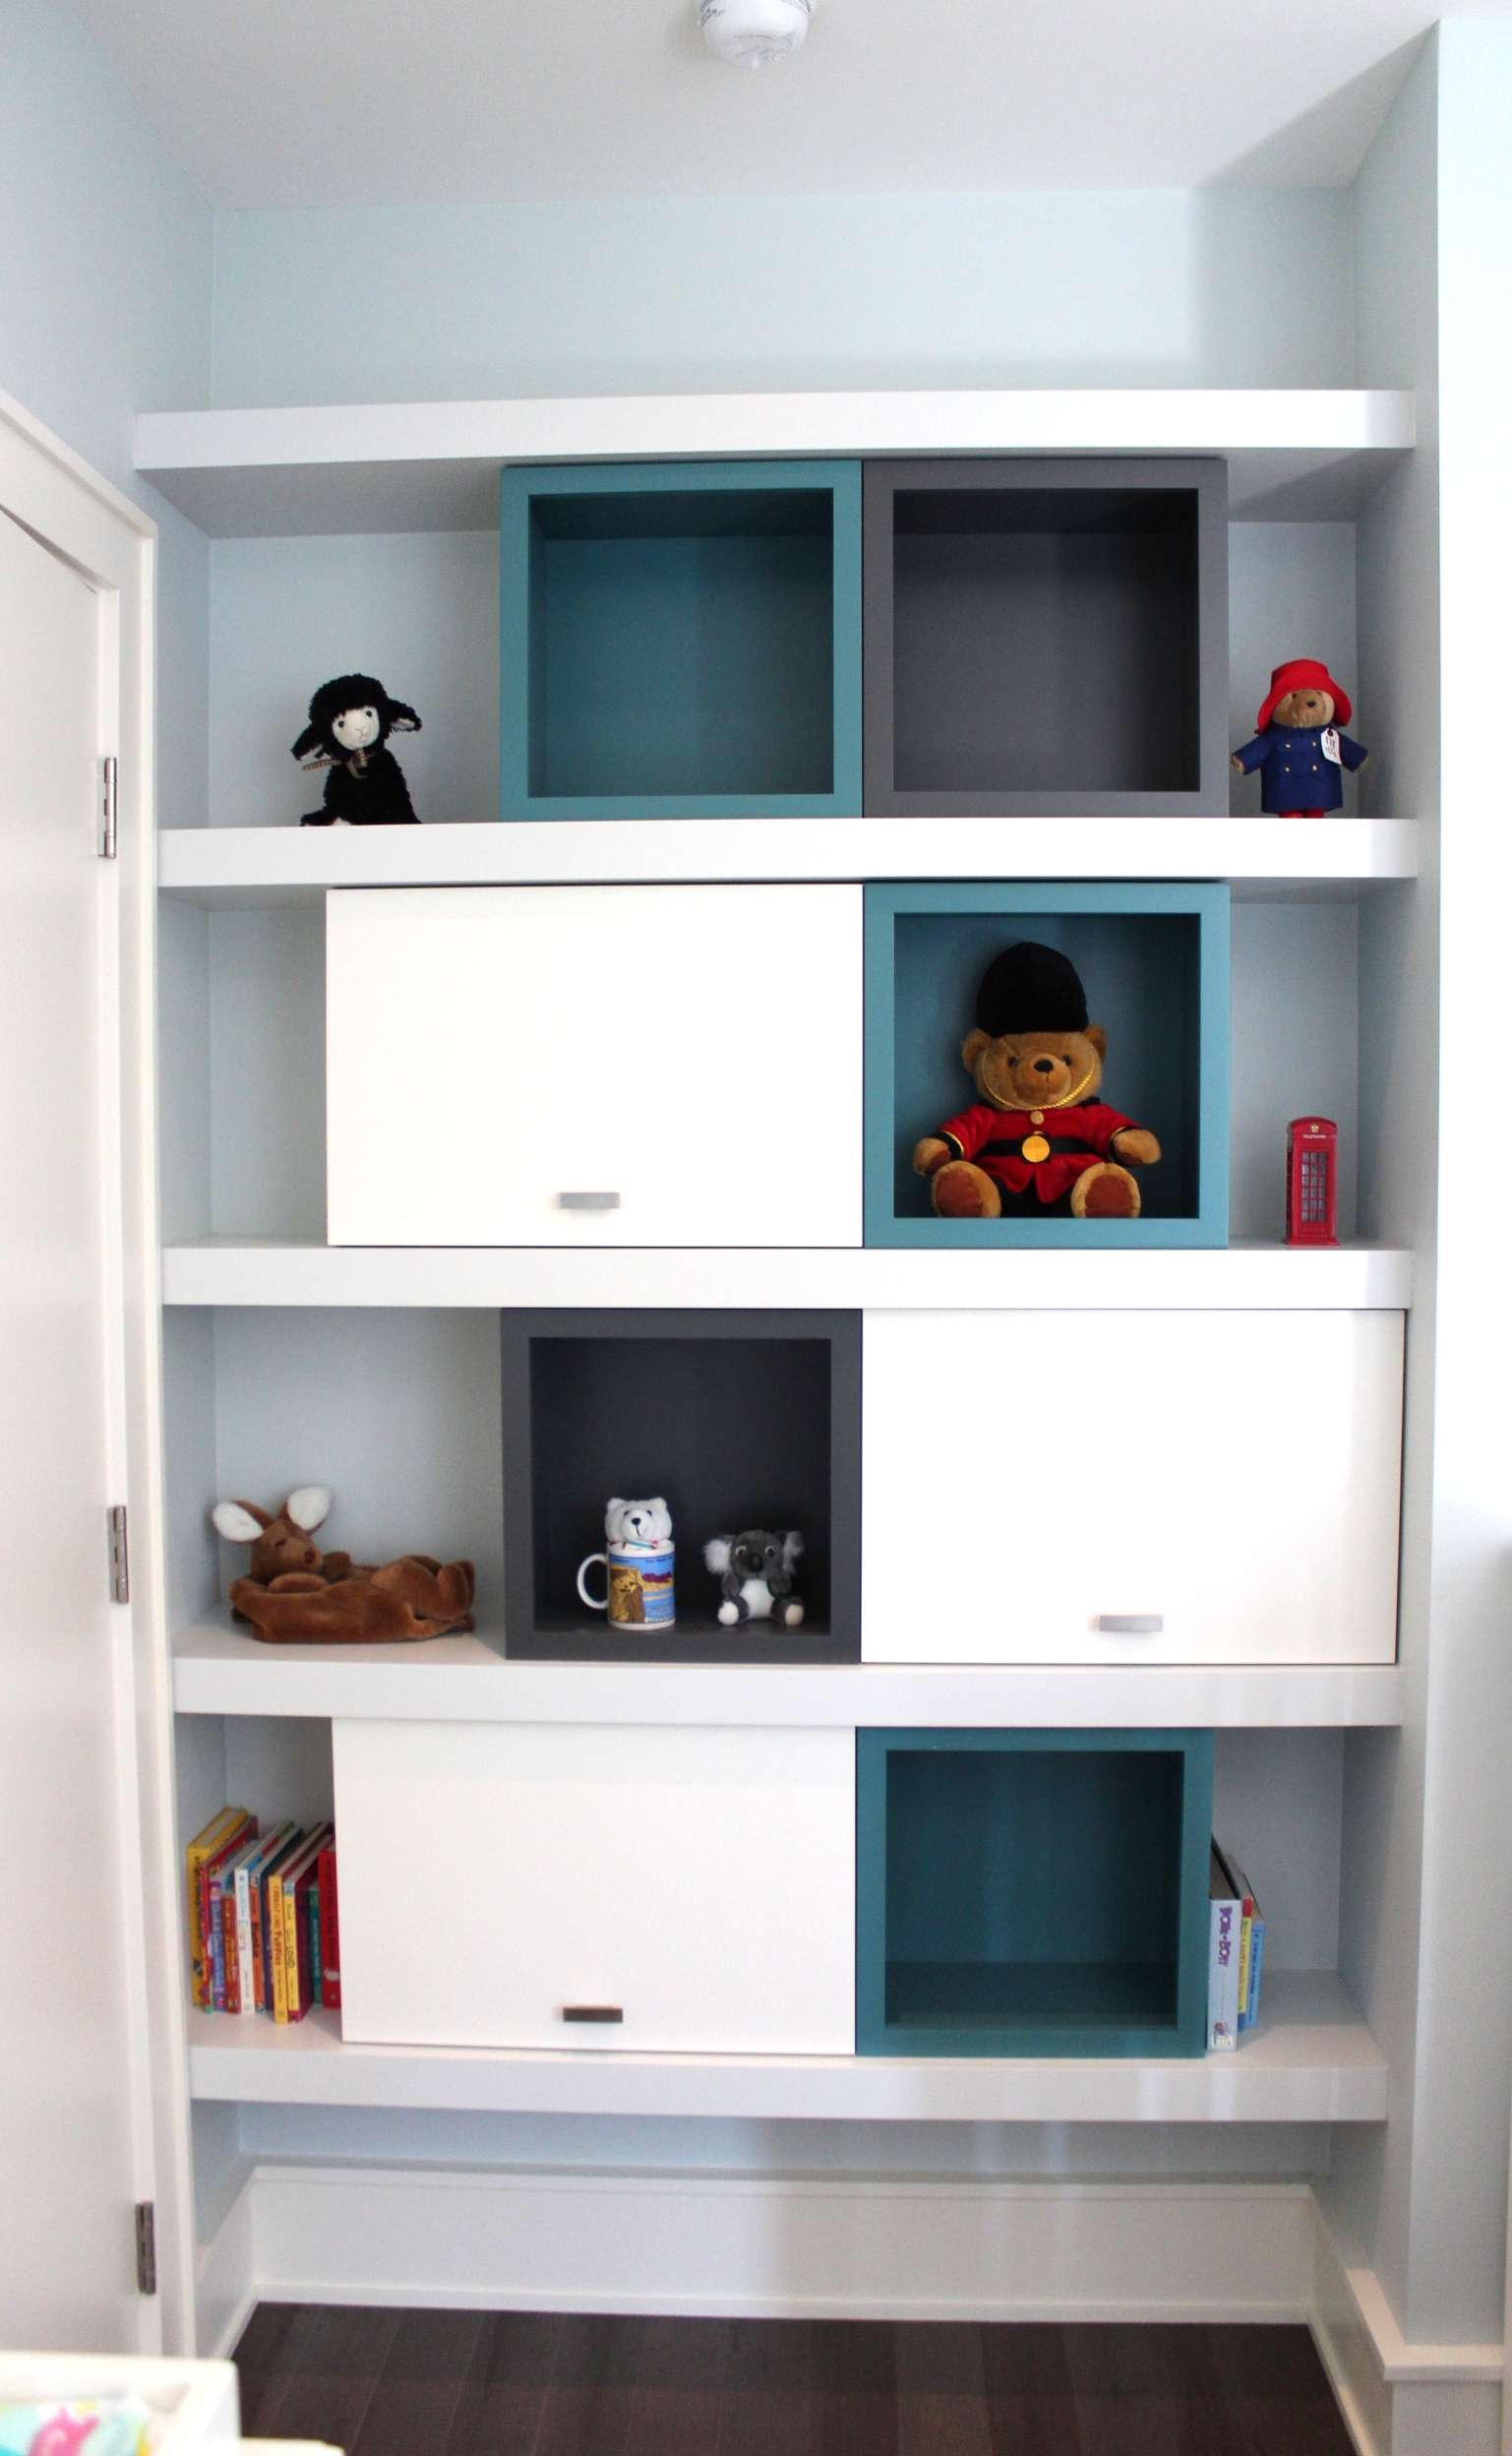 Modular Kids shelving designed to be playful and fun, as well as functional for open faced as well as cabinet storage.